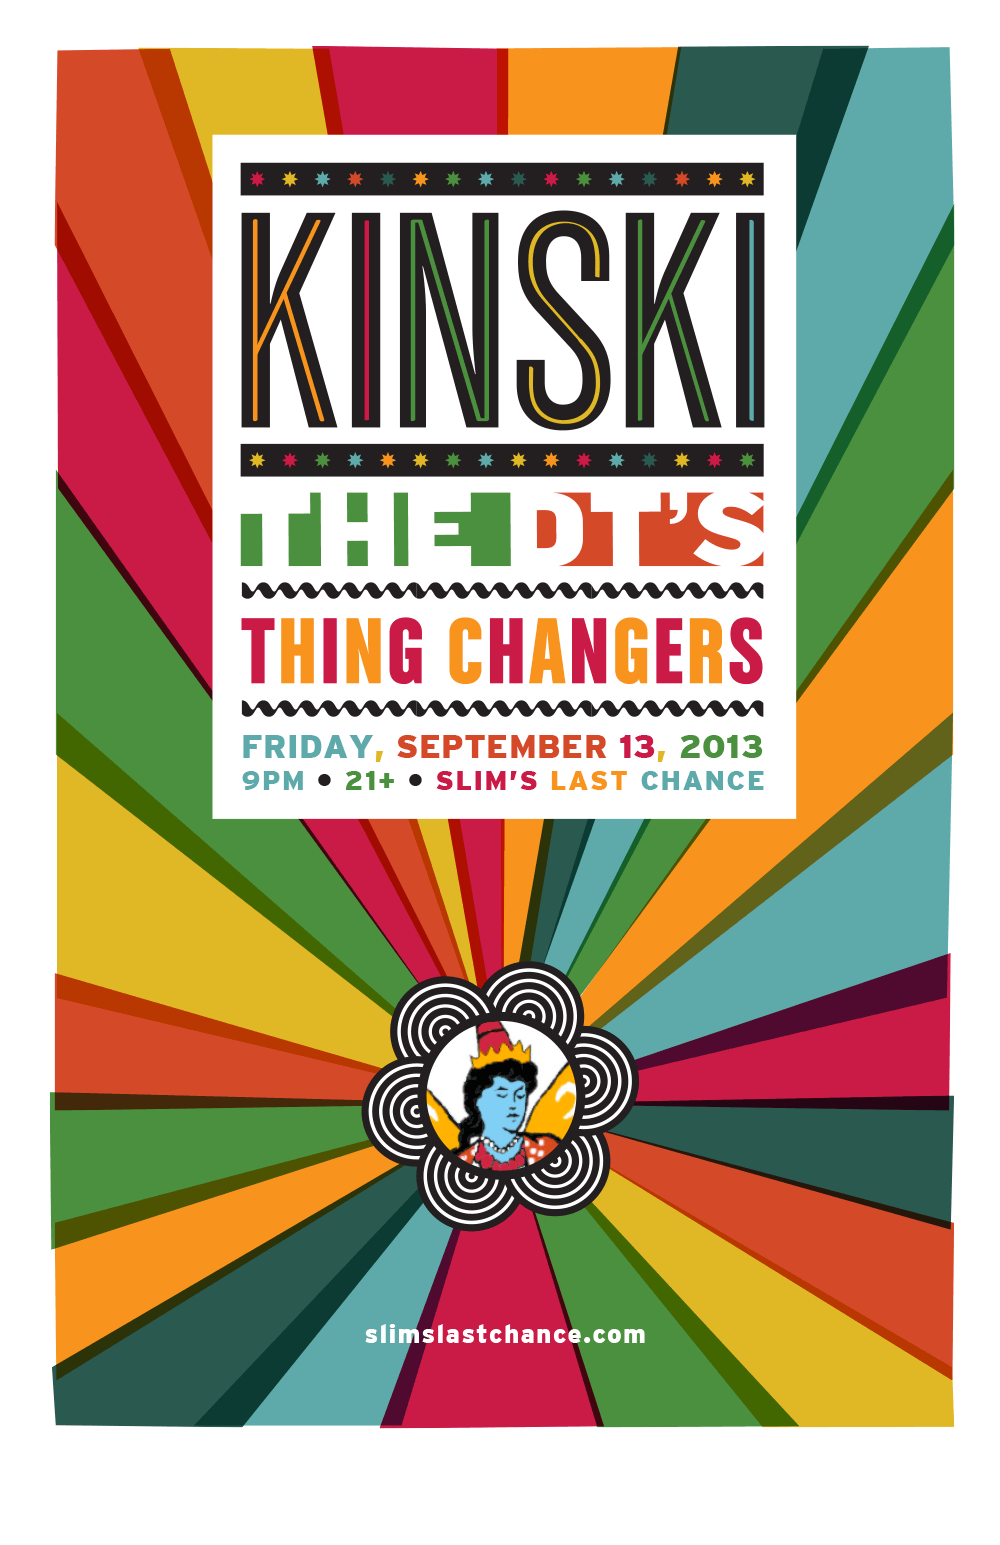 Thingchangers_091313.png